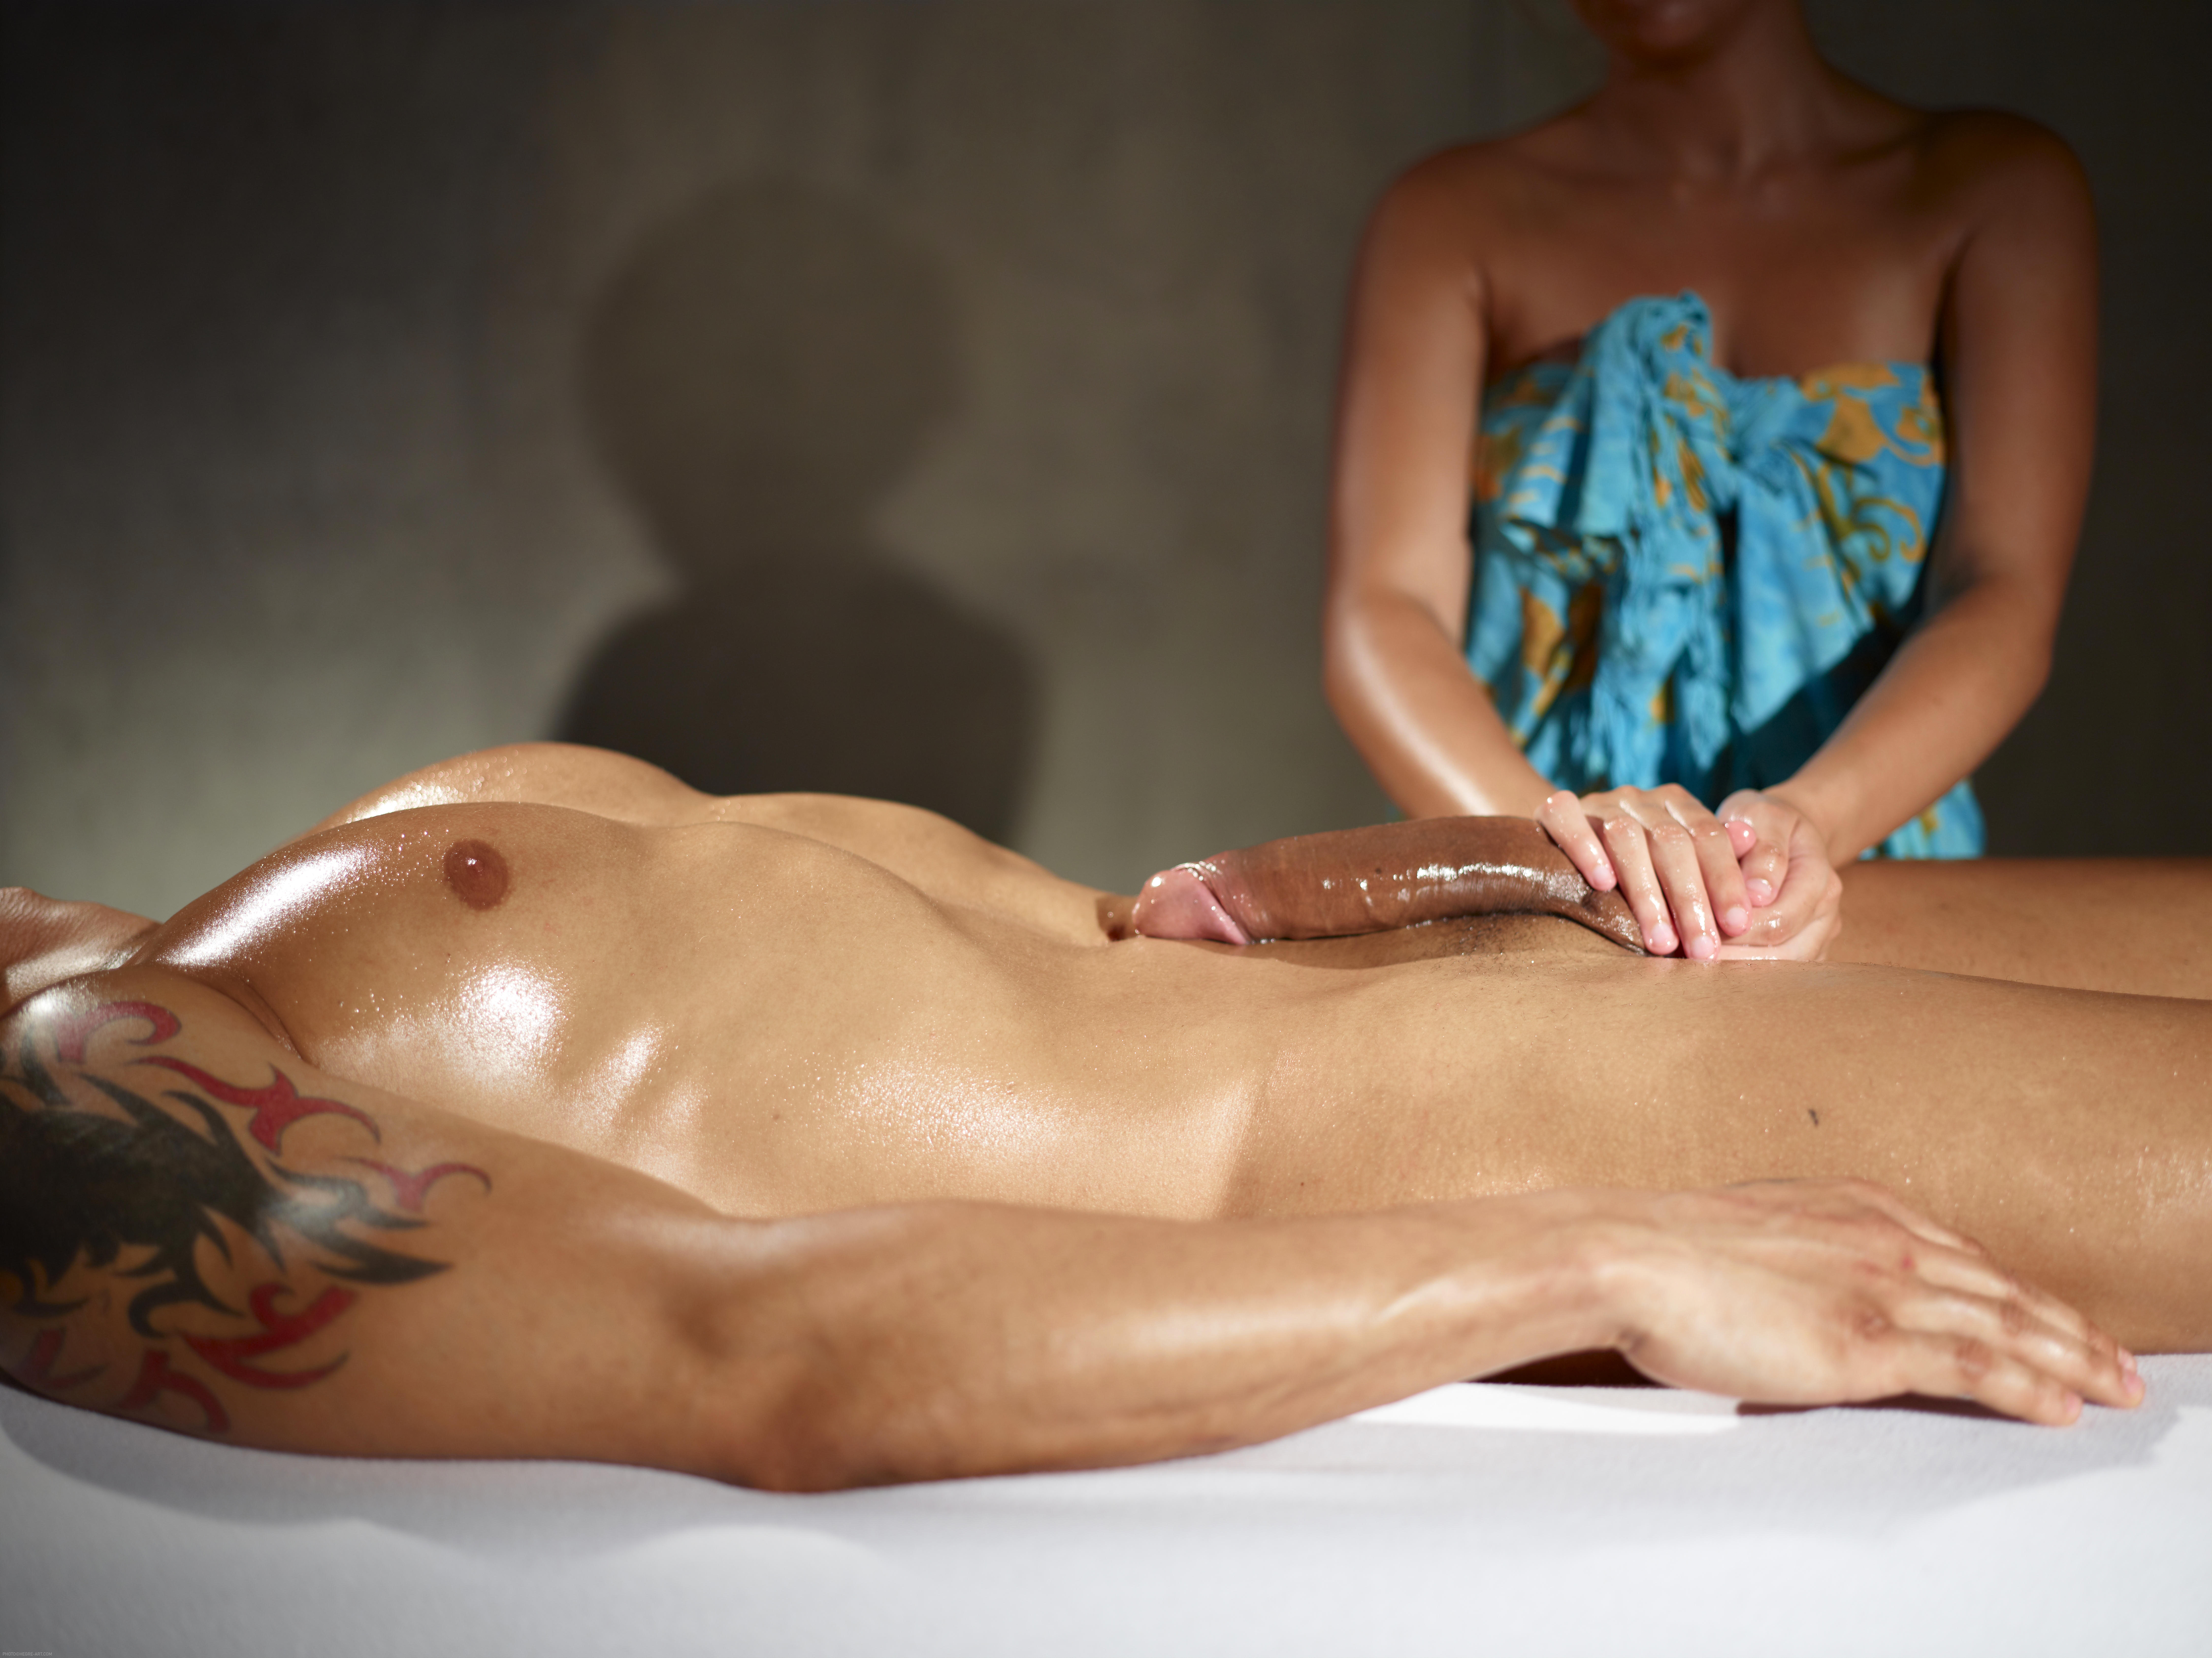 body to body massge massagr sex